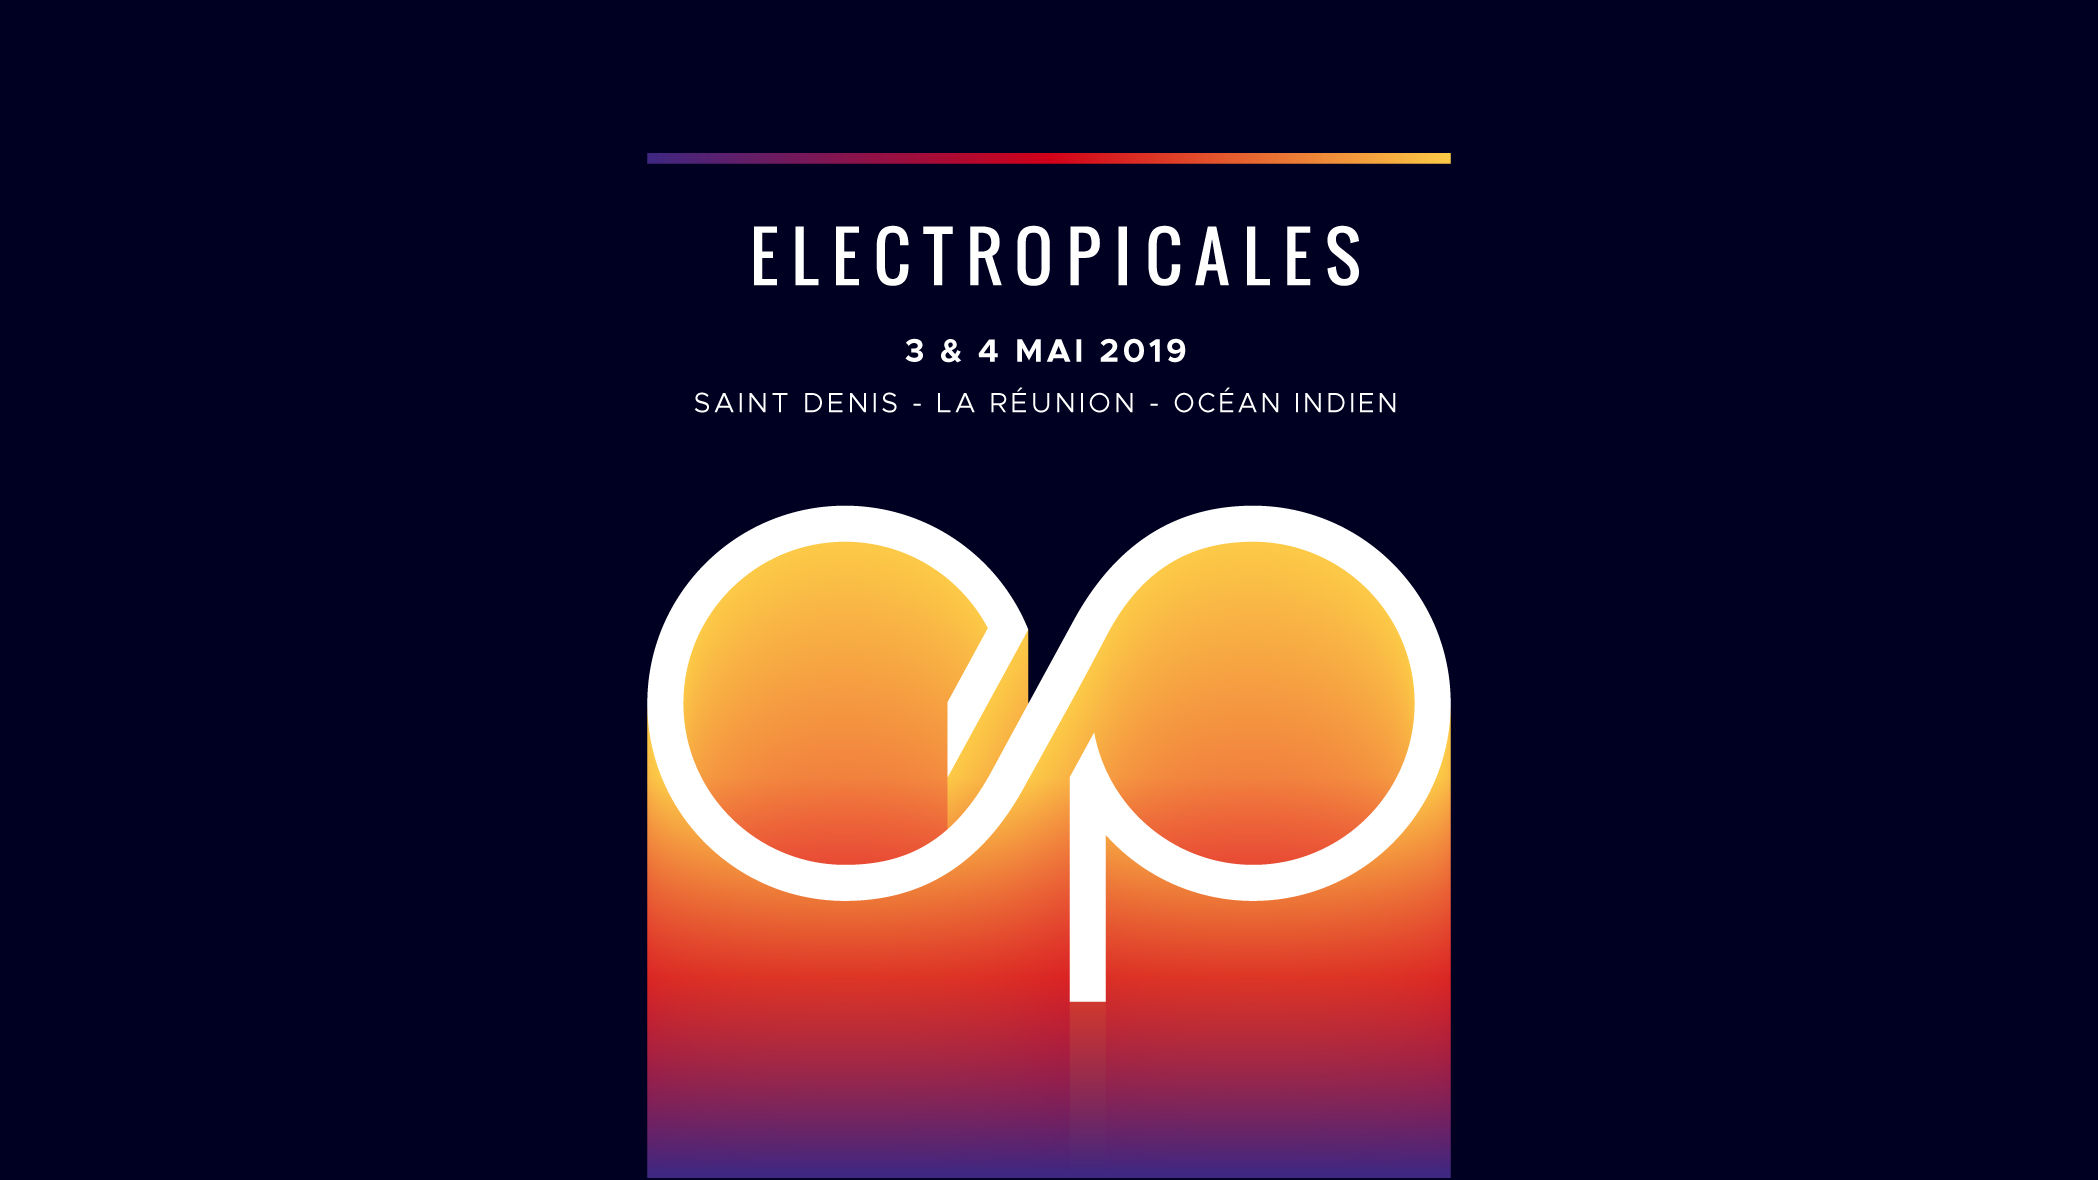 Electropicales affiche 2019